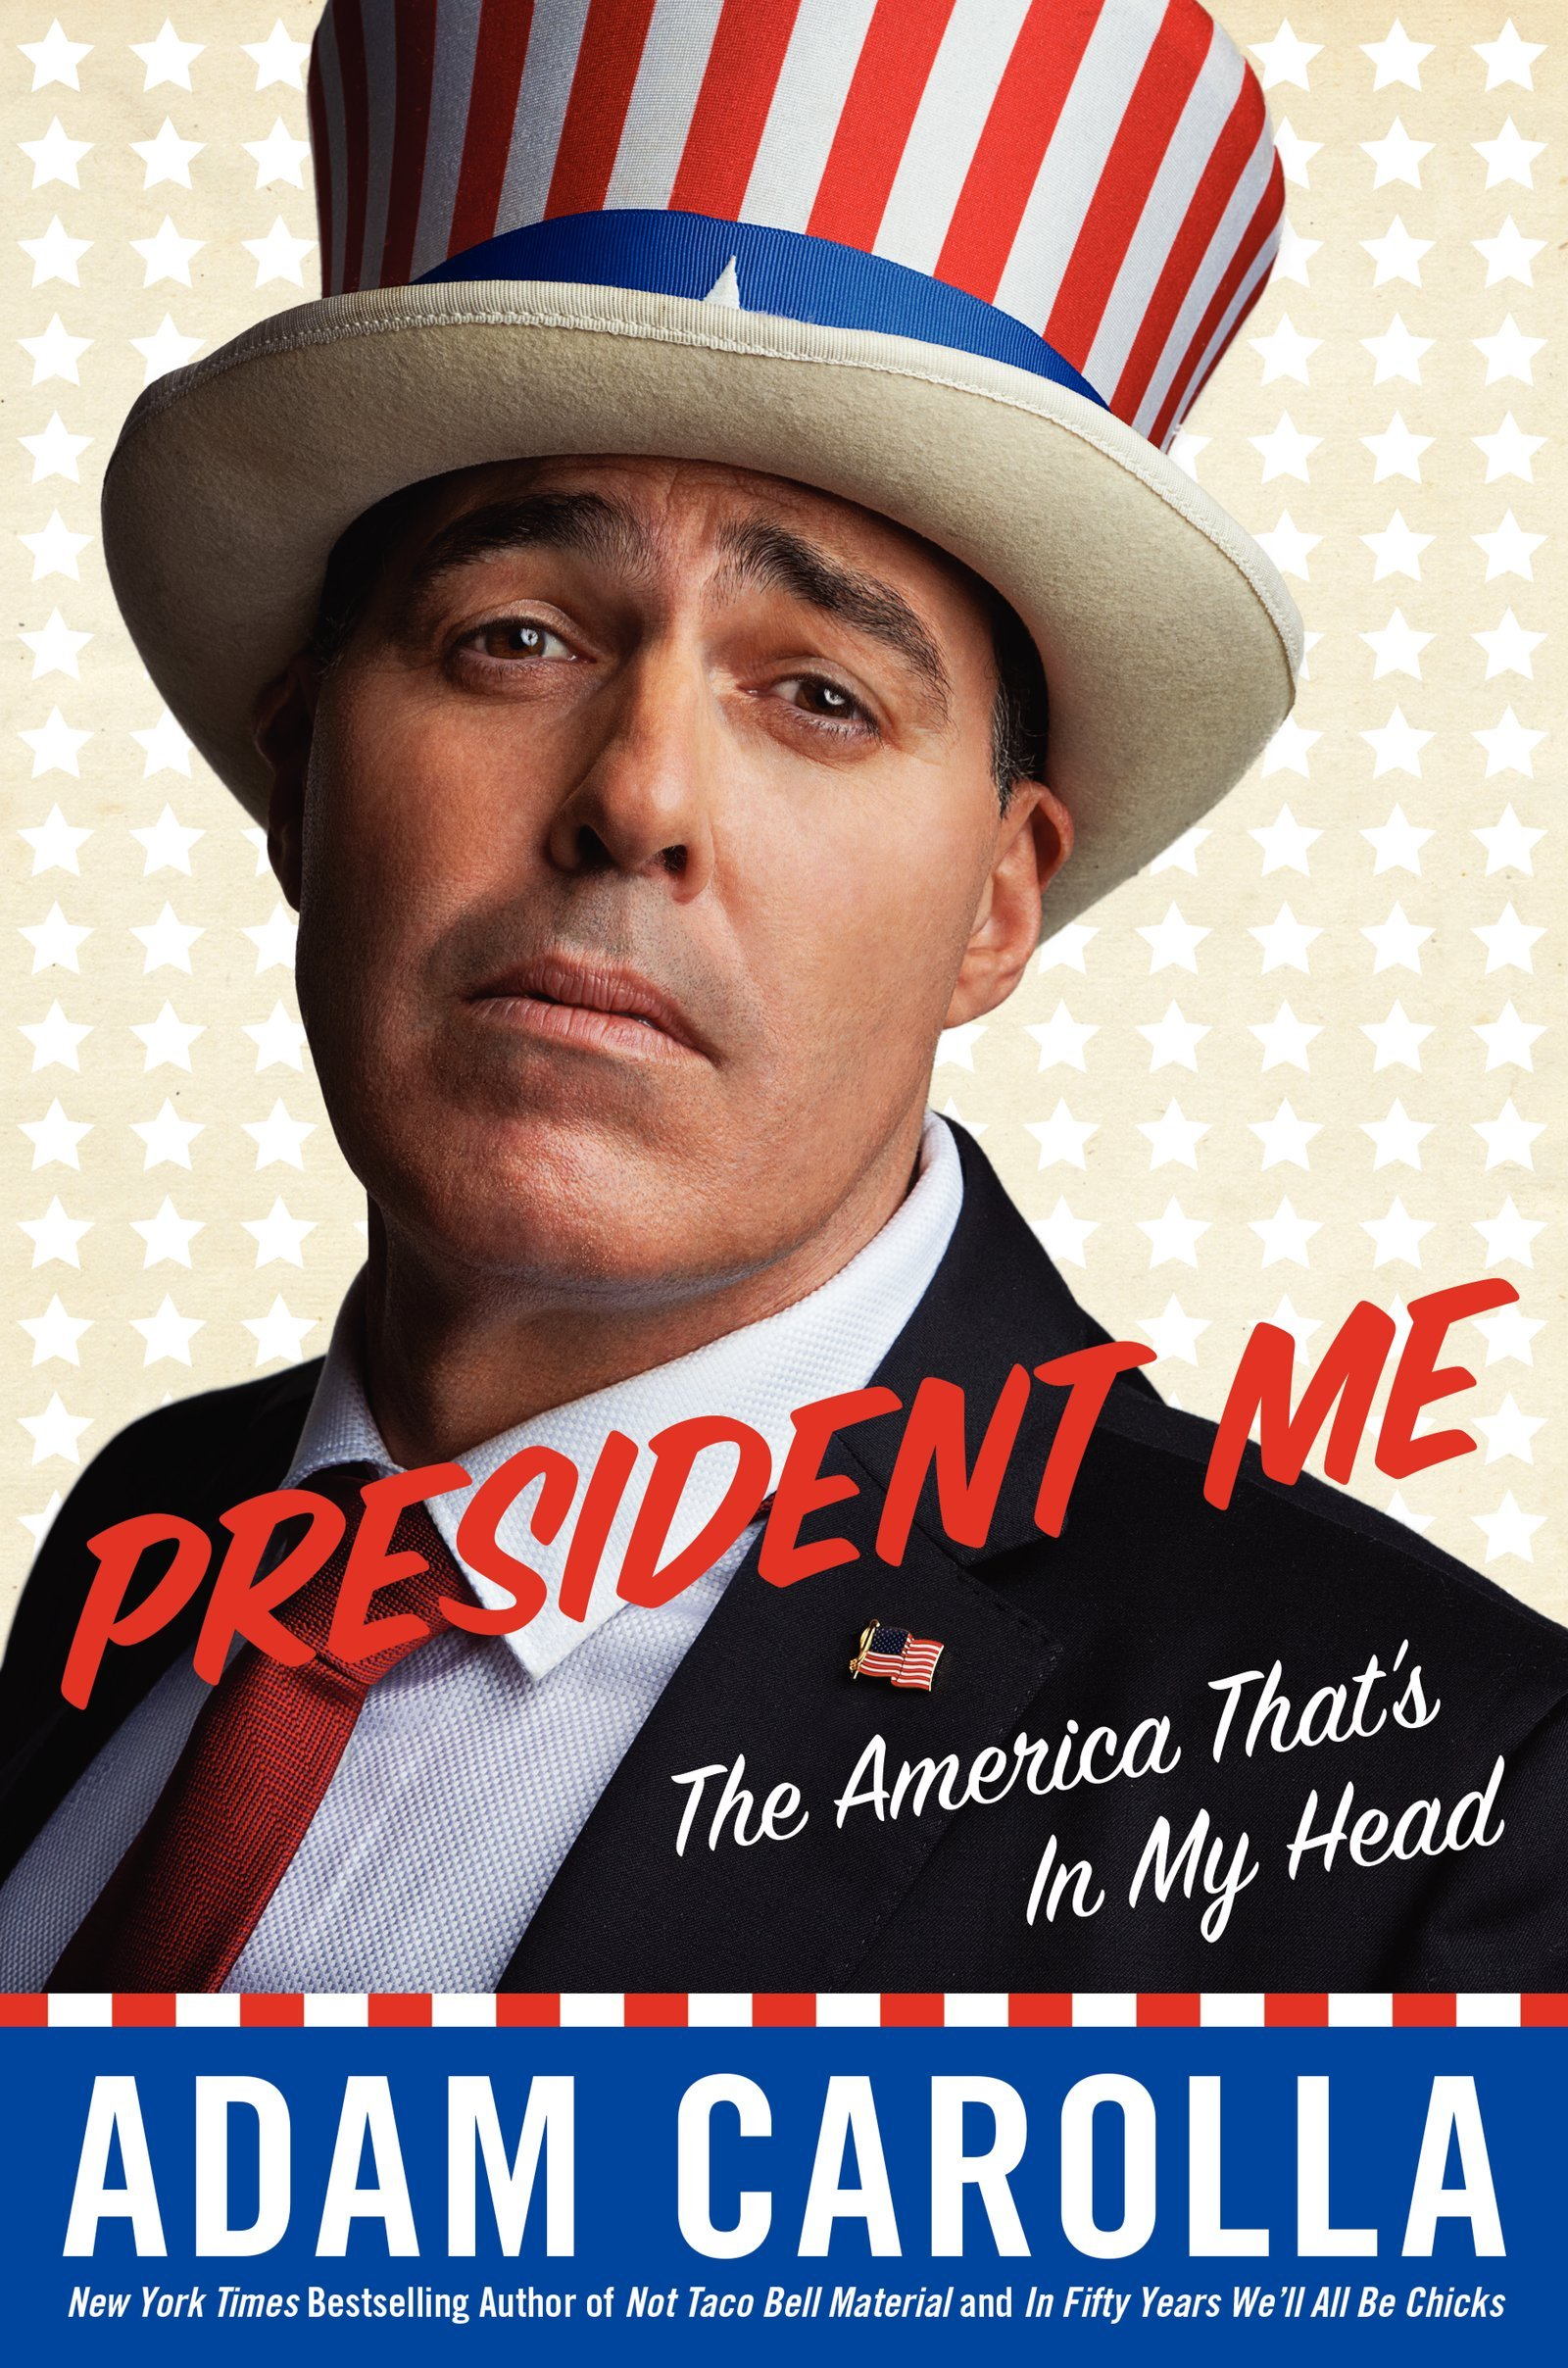 Carolla – President Me: The America That's in My Head